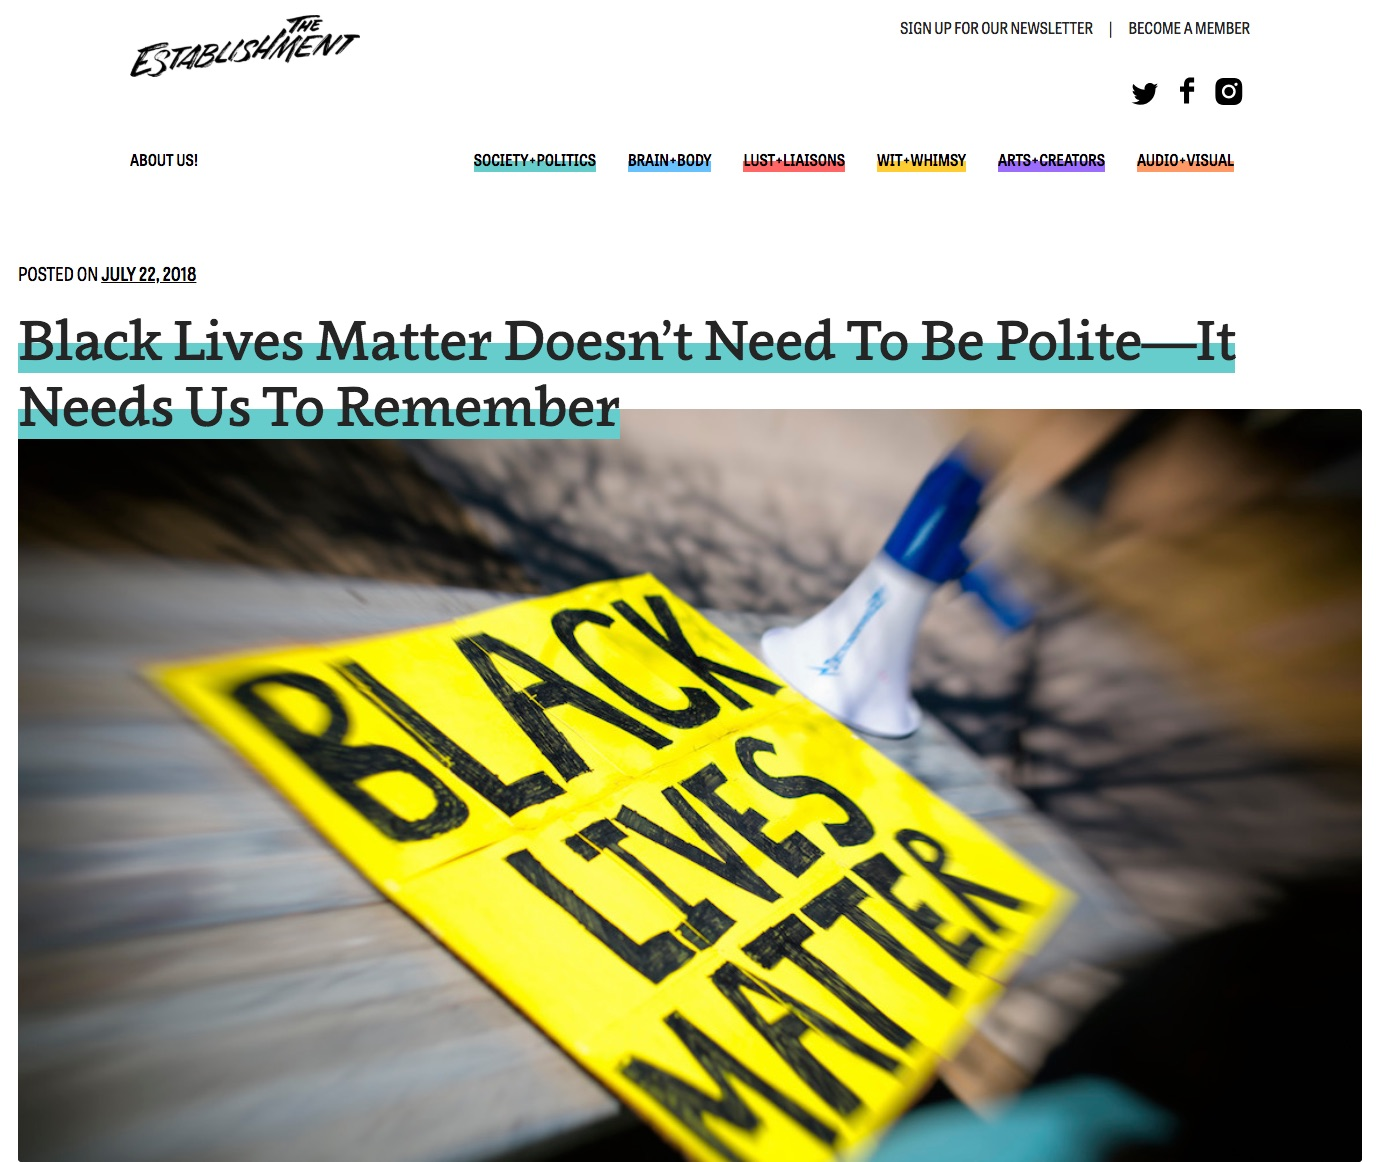 Screen shot of The Establishment's homepage, featuring a photo of a Black Lives matter sign lying on a sidewalk